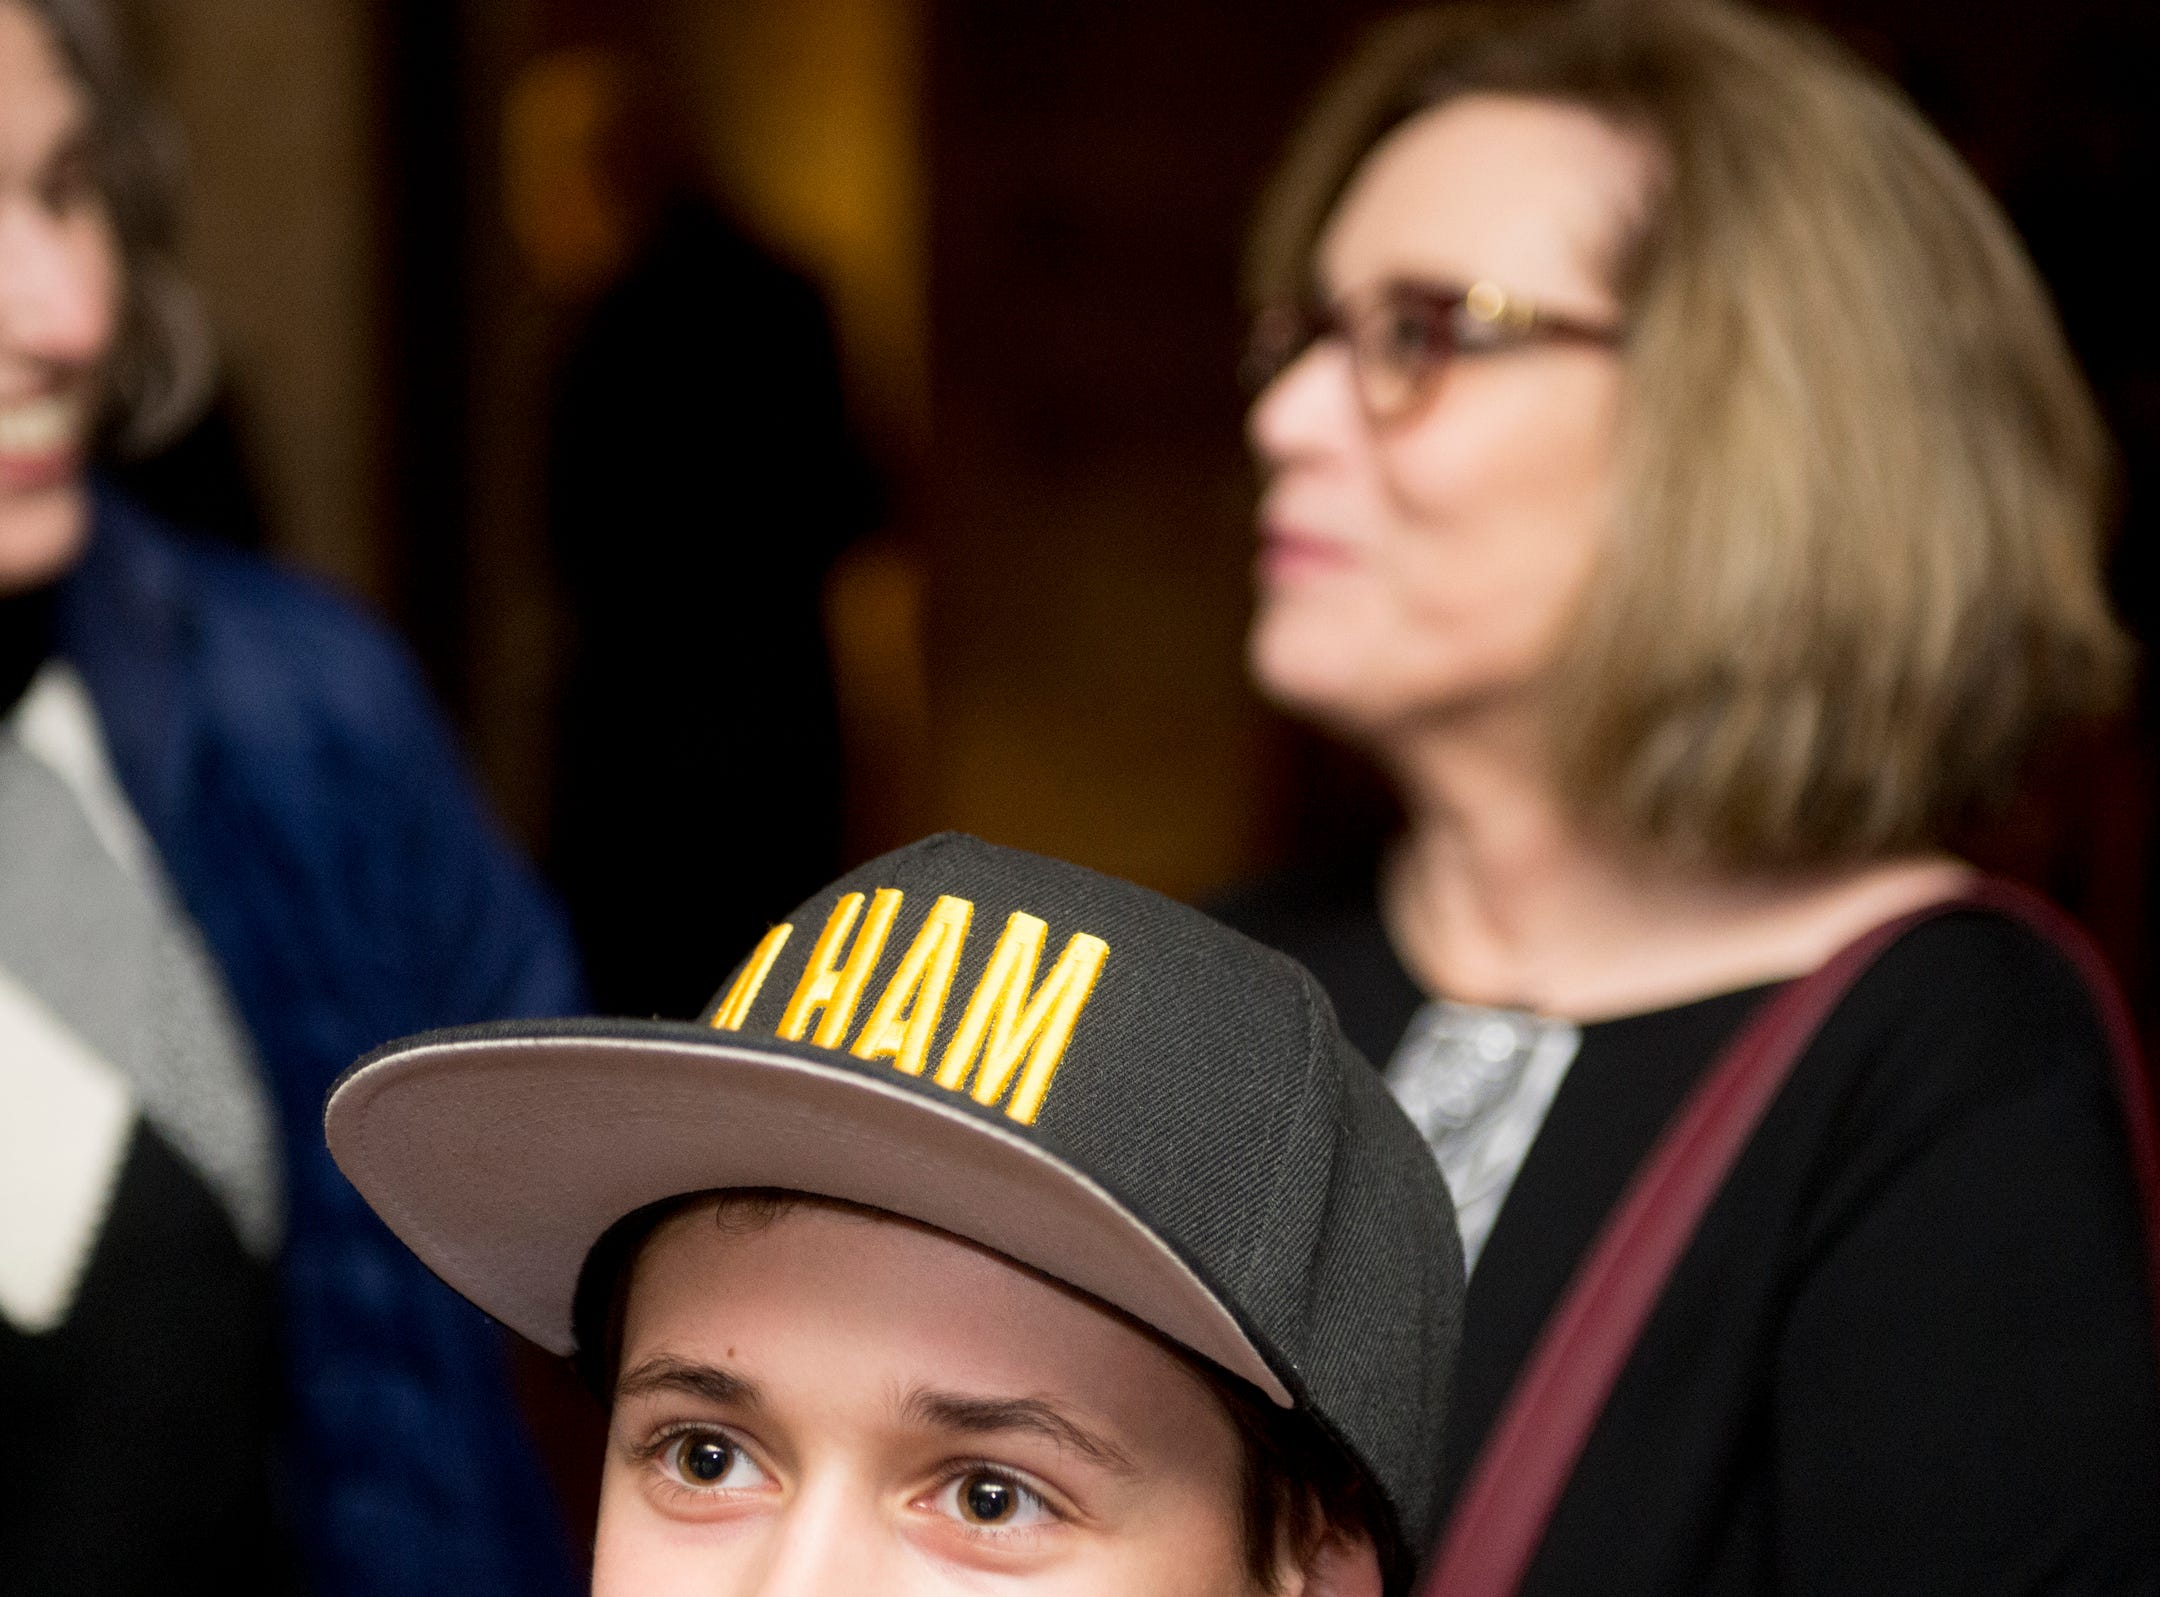 """Adam Michaels, 12, of Farmington Hills wears a hat that says """"A Ham"""" while waiting for the doors for Hamilton to open at the Fisher Theatre in Detroit on Tuesday, March 12, 2019. The opening night of Broadway's Hamilton played to a full house in Detroit on Tuesday."""